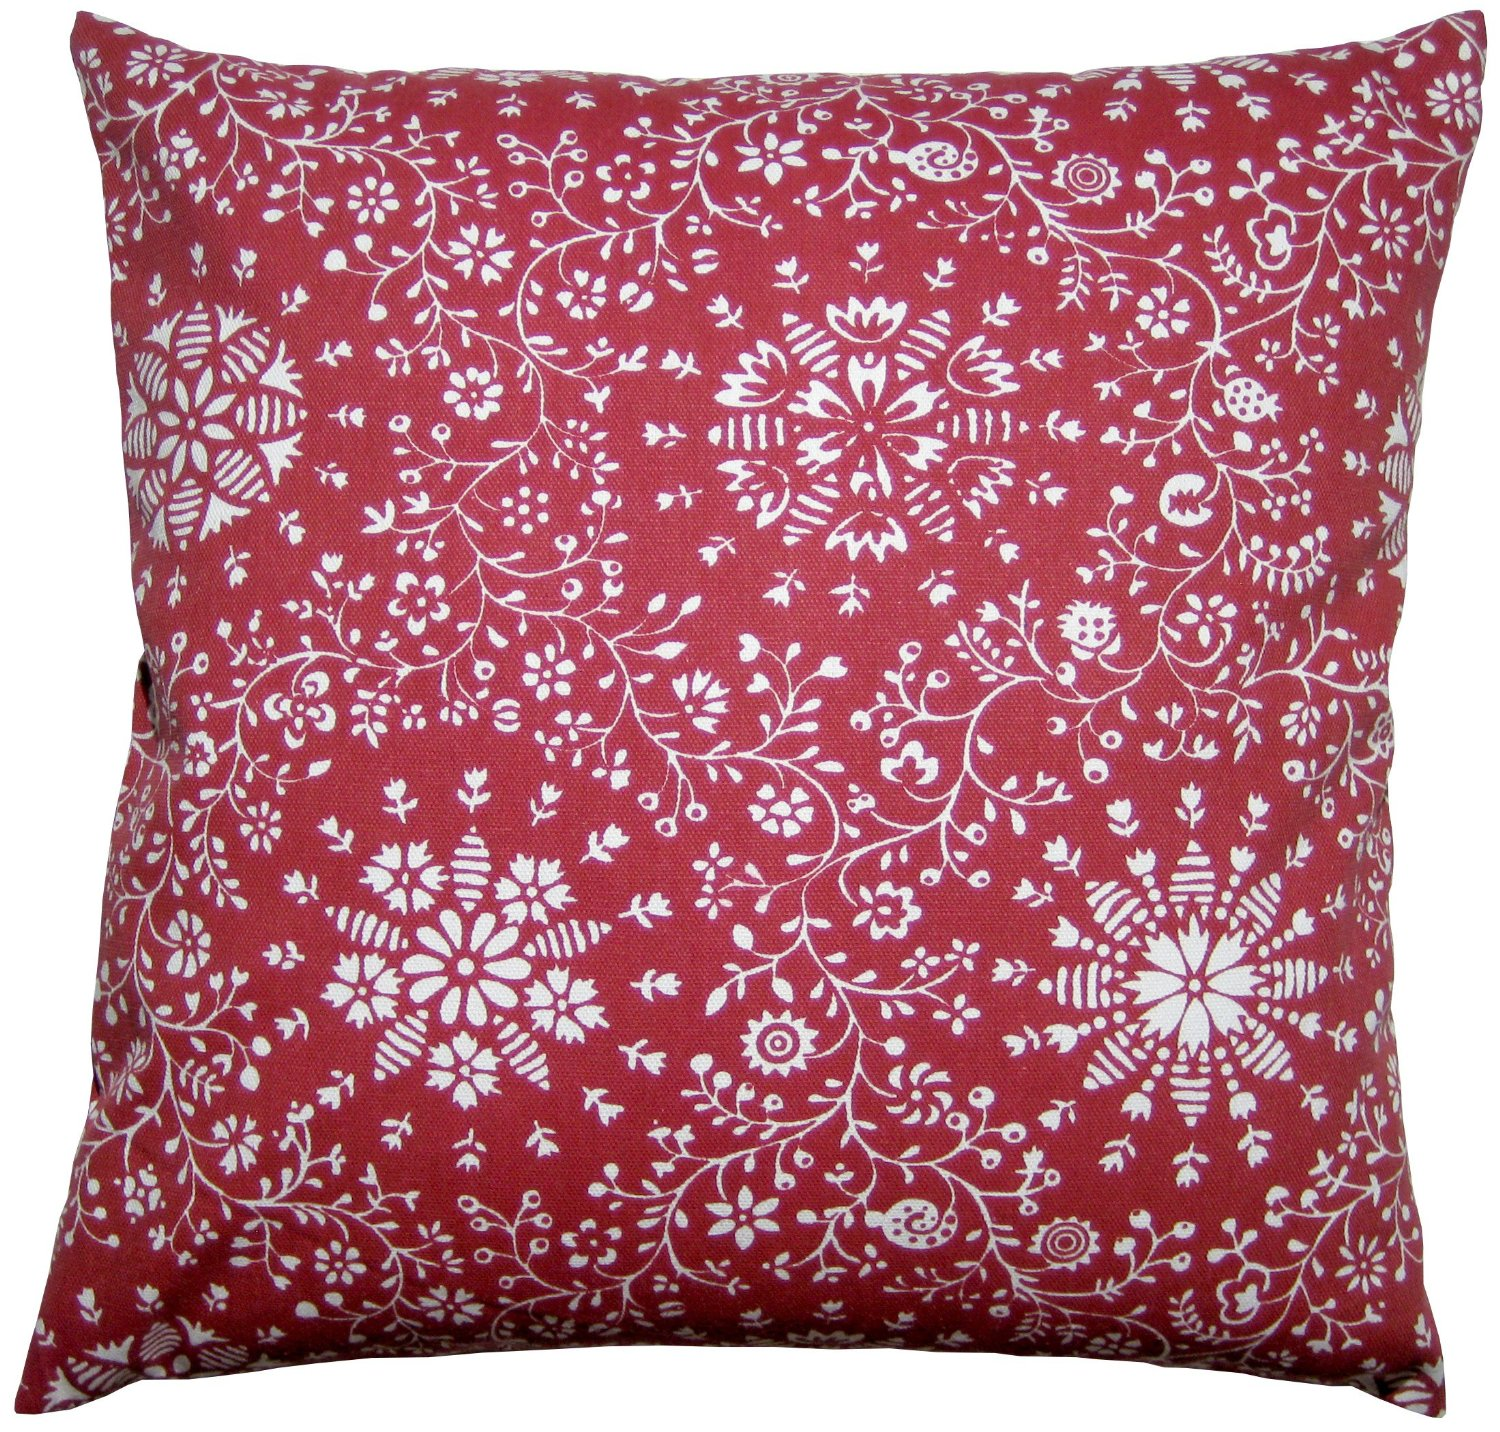 red floral print throw pillow